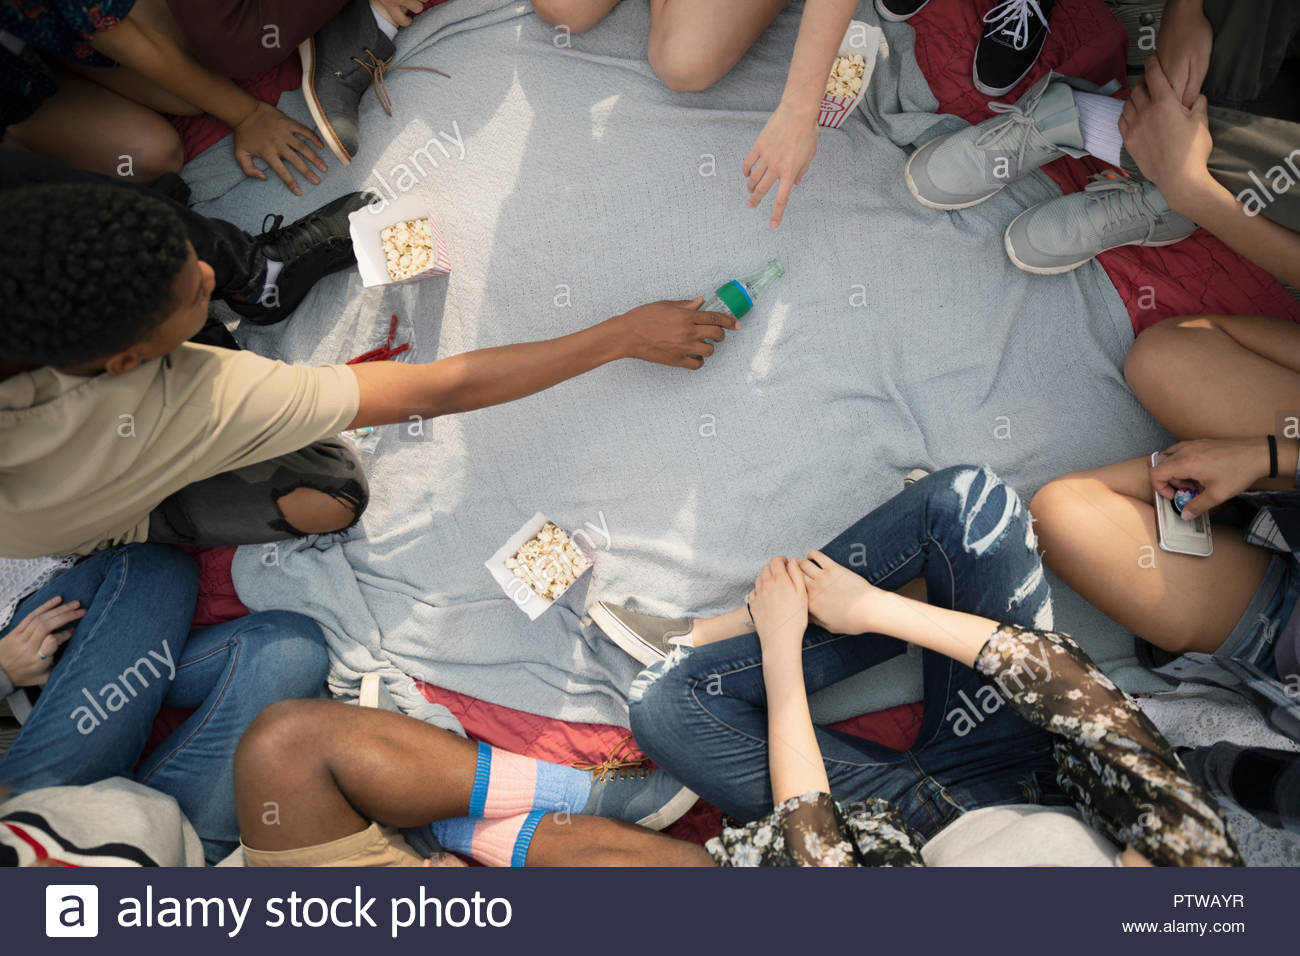 Teenage friends hanging out, playing spin the bottle - Stock Image